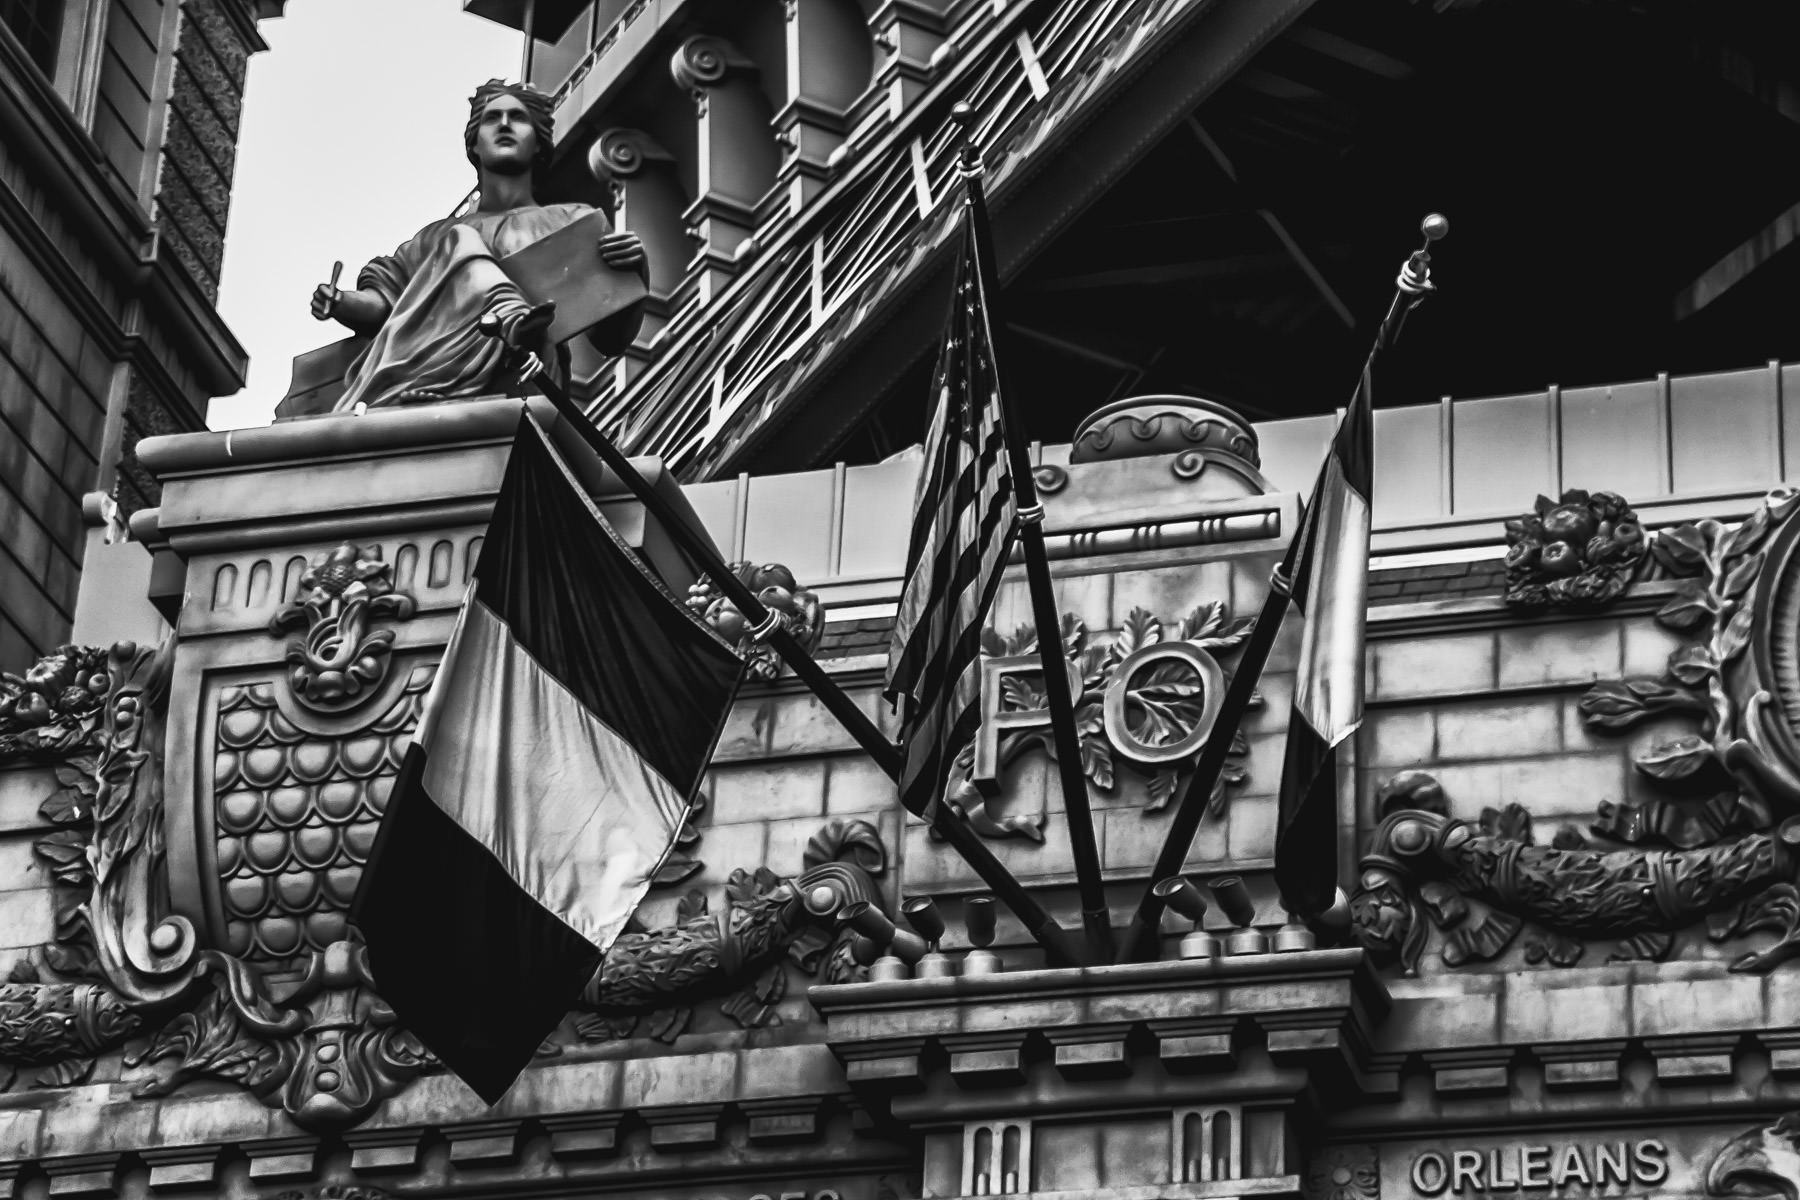 French and American flags and architectural detail on the exterior of Paris Hotel and Casino, Las Vegas.